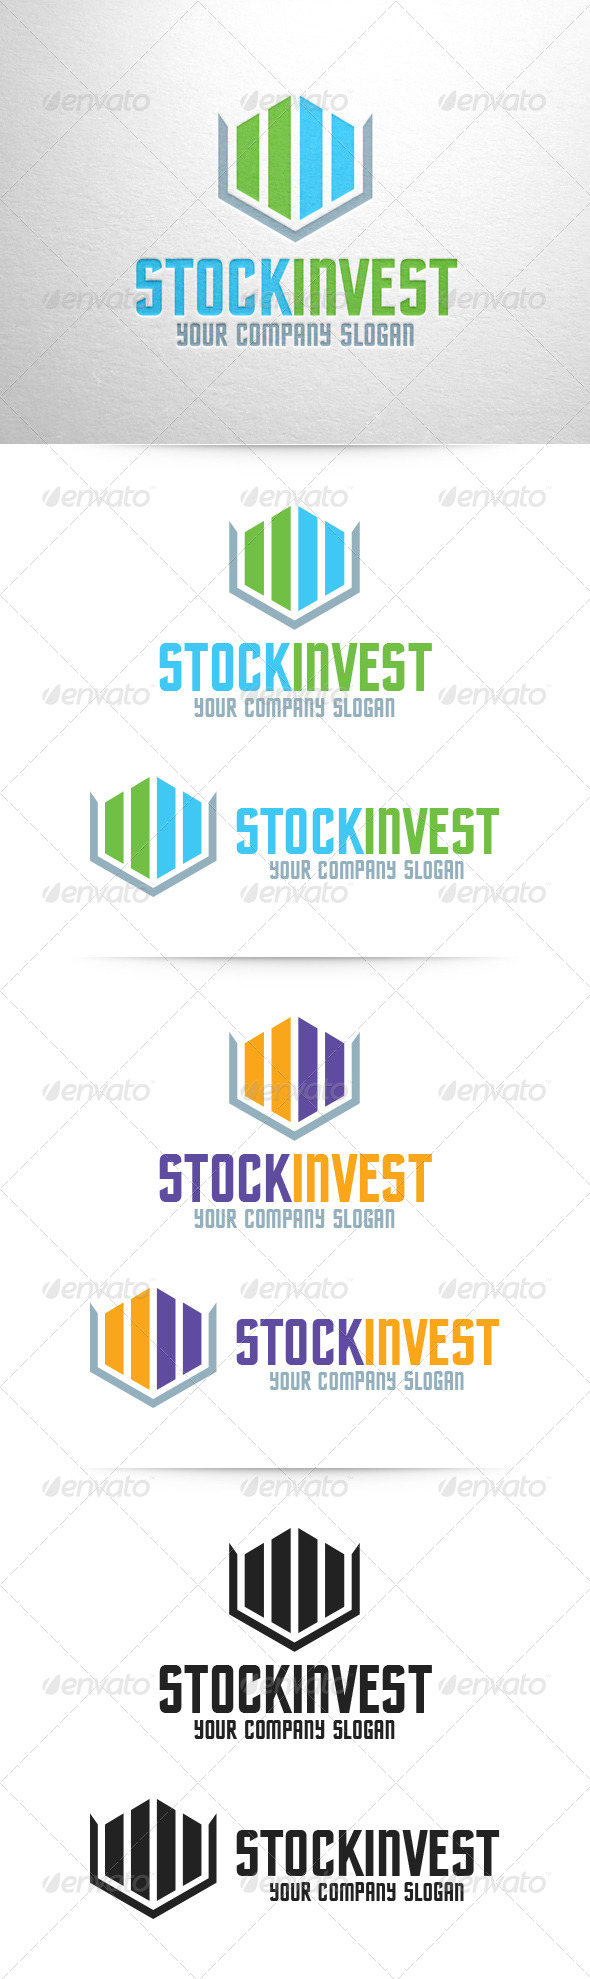 GraphicRiver Stock Invest Logo Template 6795604